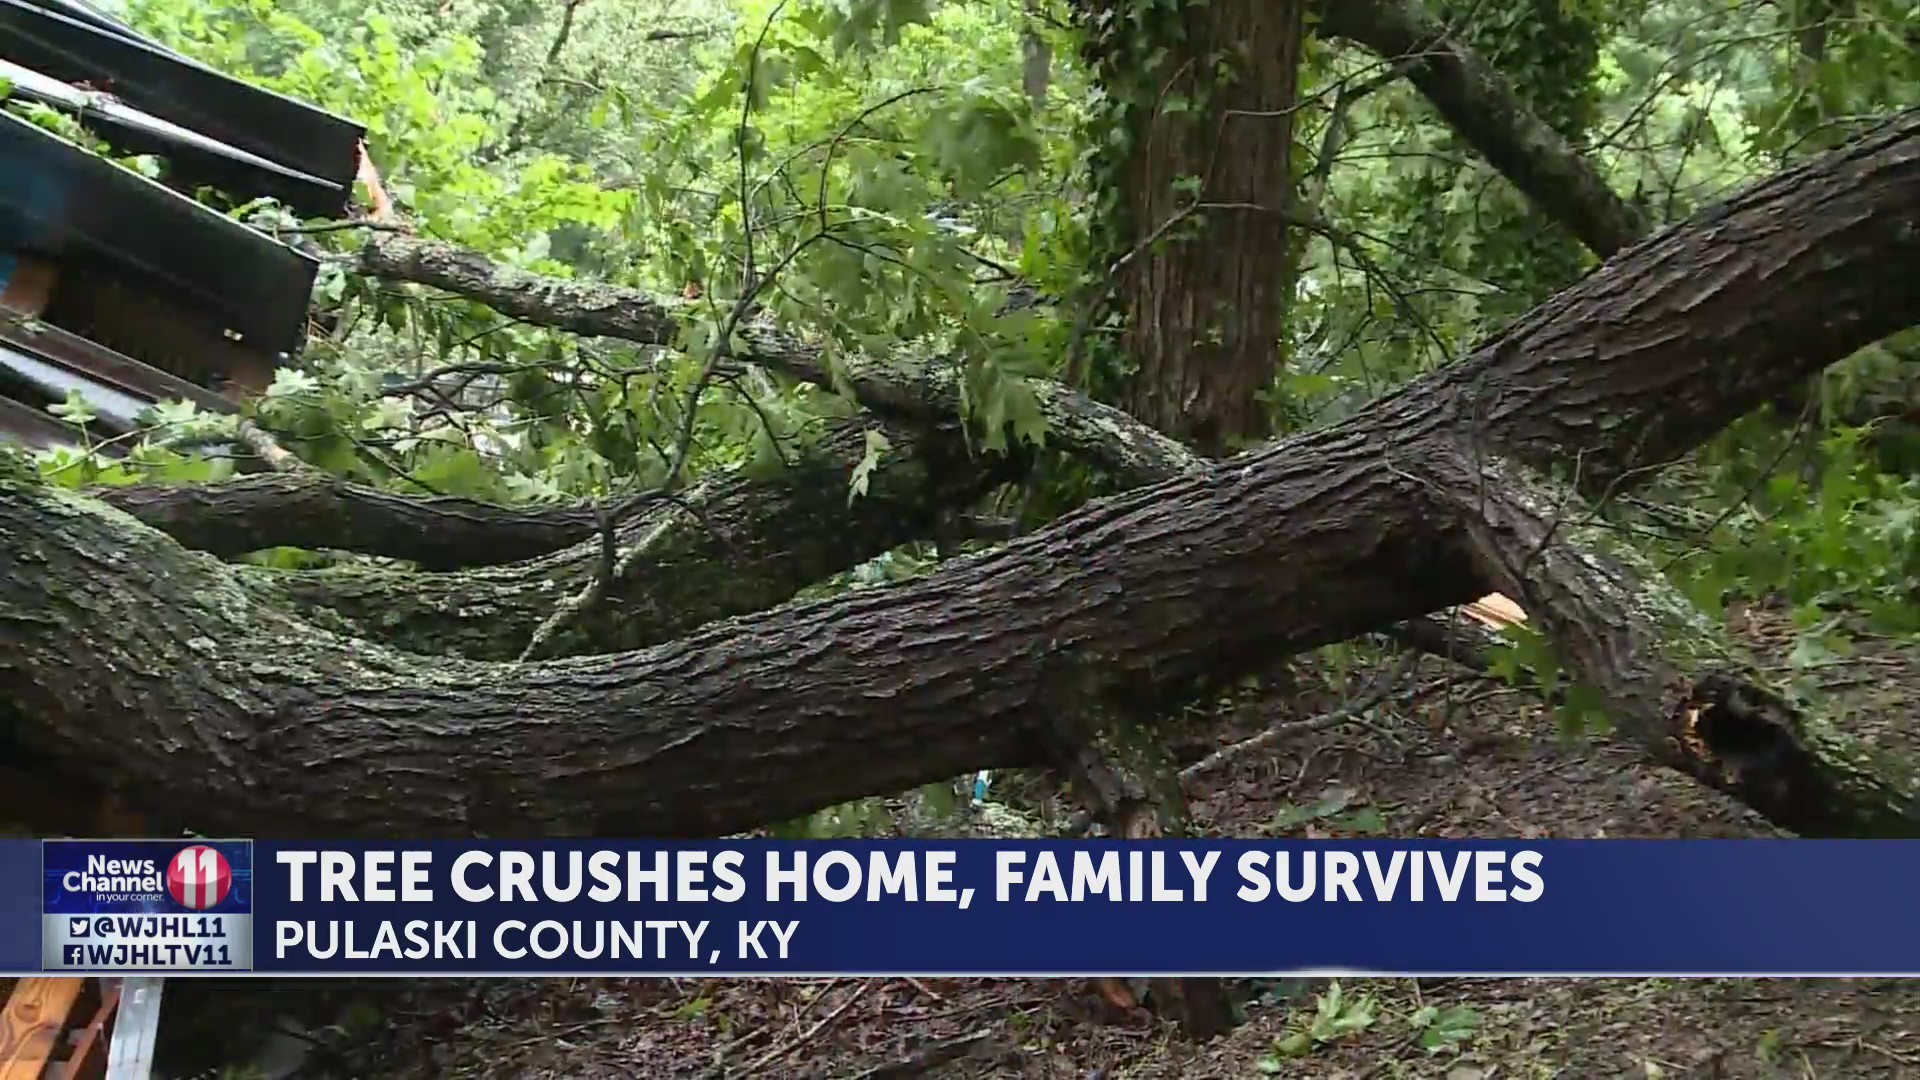 KY family survives fallen tree